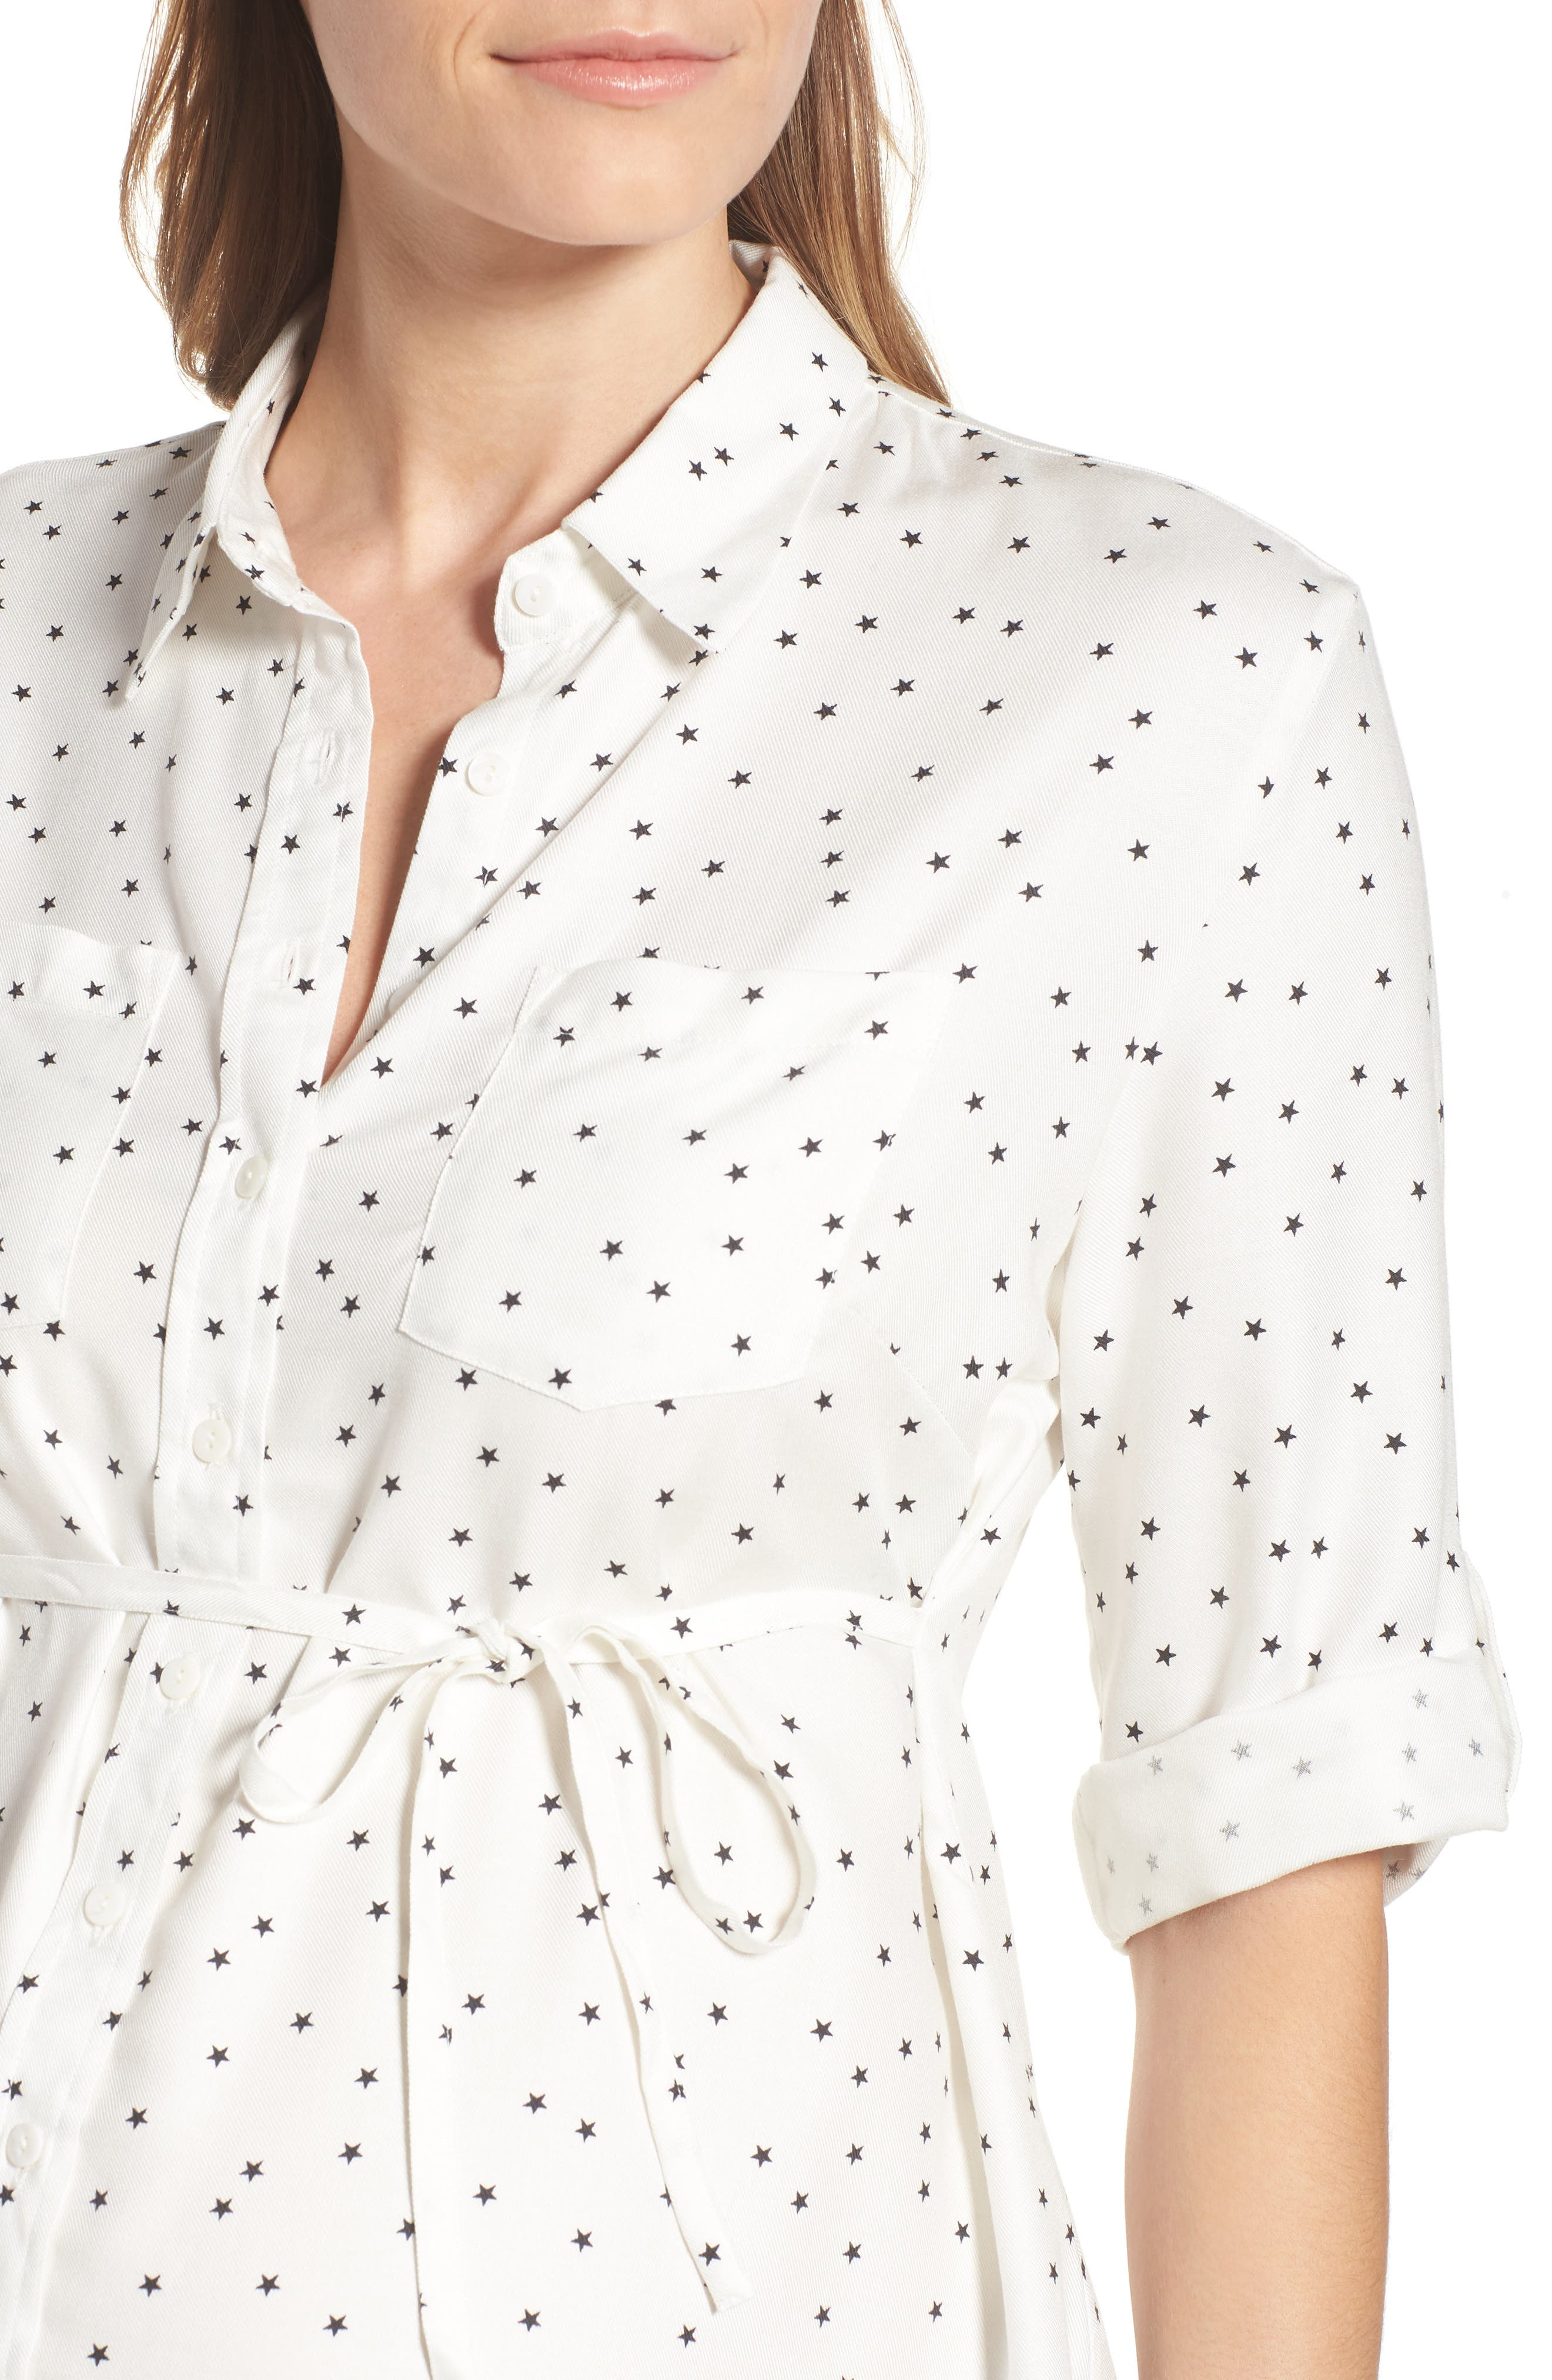 Selina Maternity Shirt,                             Alternate thumbnail 4, color,                             OFF WHITE STAR PRINT